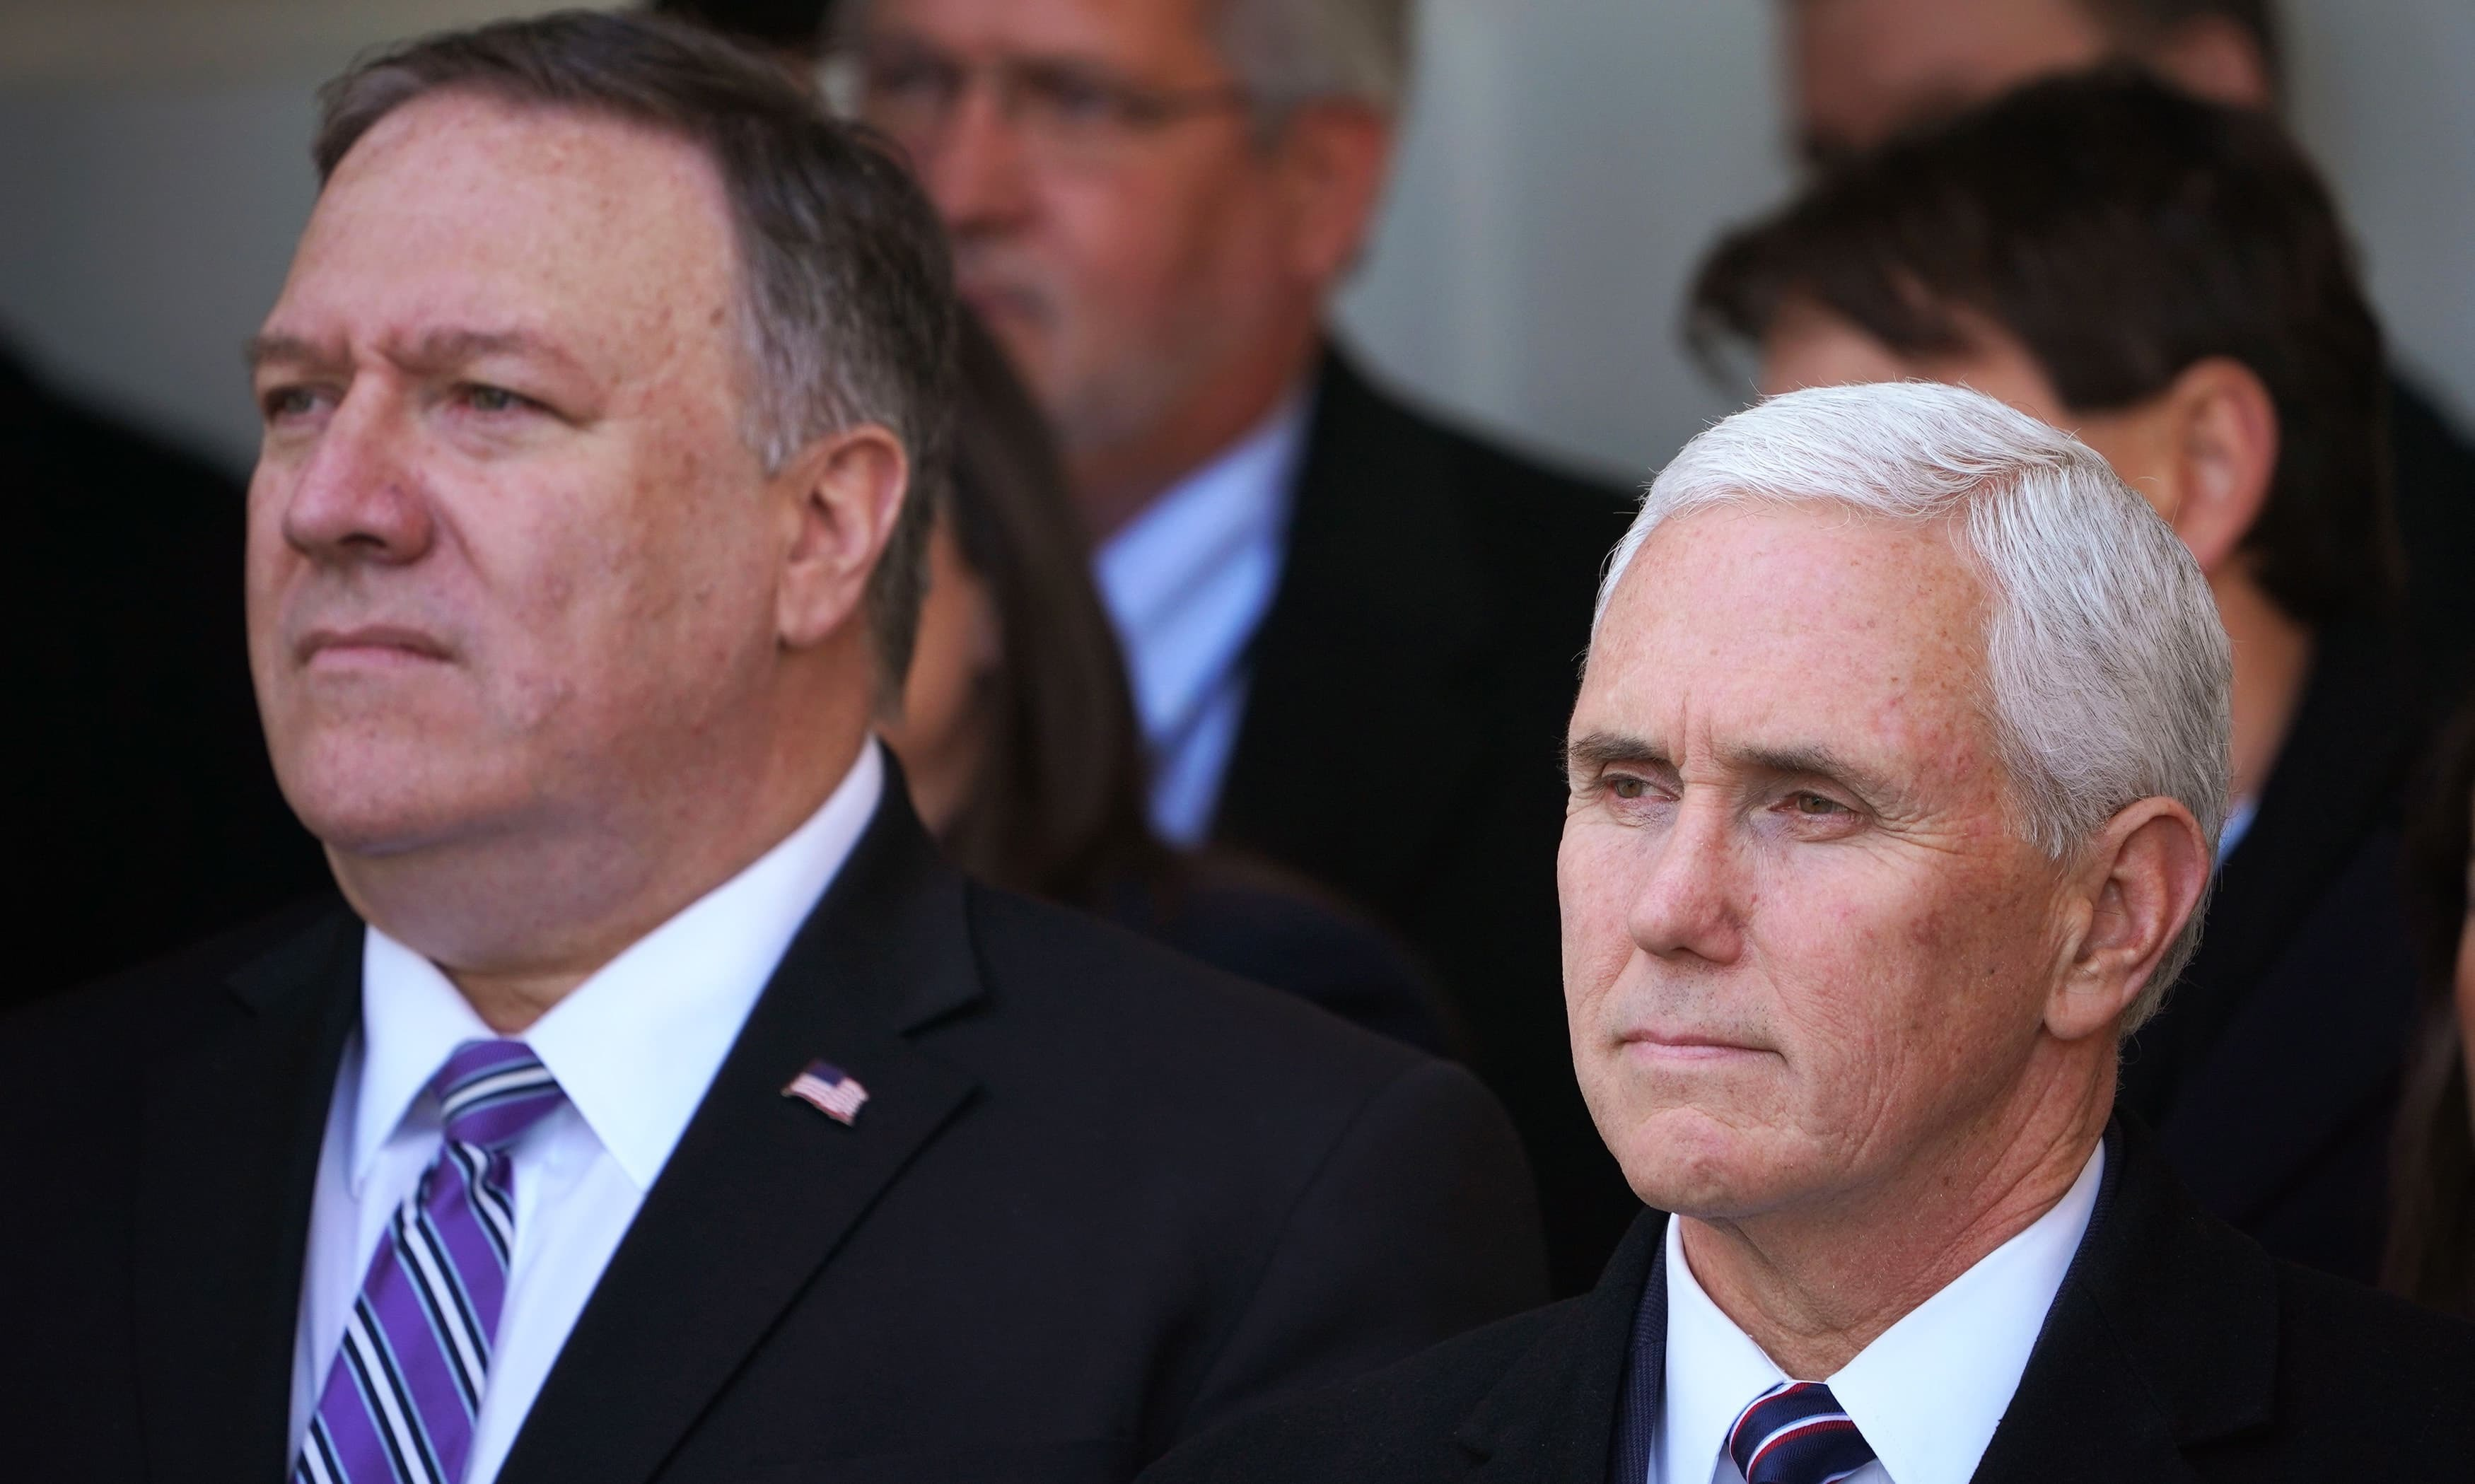 The event attracted several high profile attendees including Mike Pence, Mike Pompeo, Senate Majority Leader Mitch McConnell, and former White House hopeful Mike Bloomberg. — AFP/File